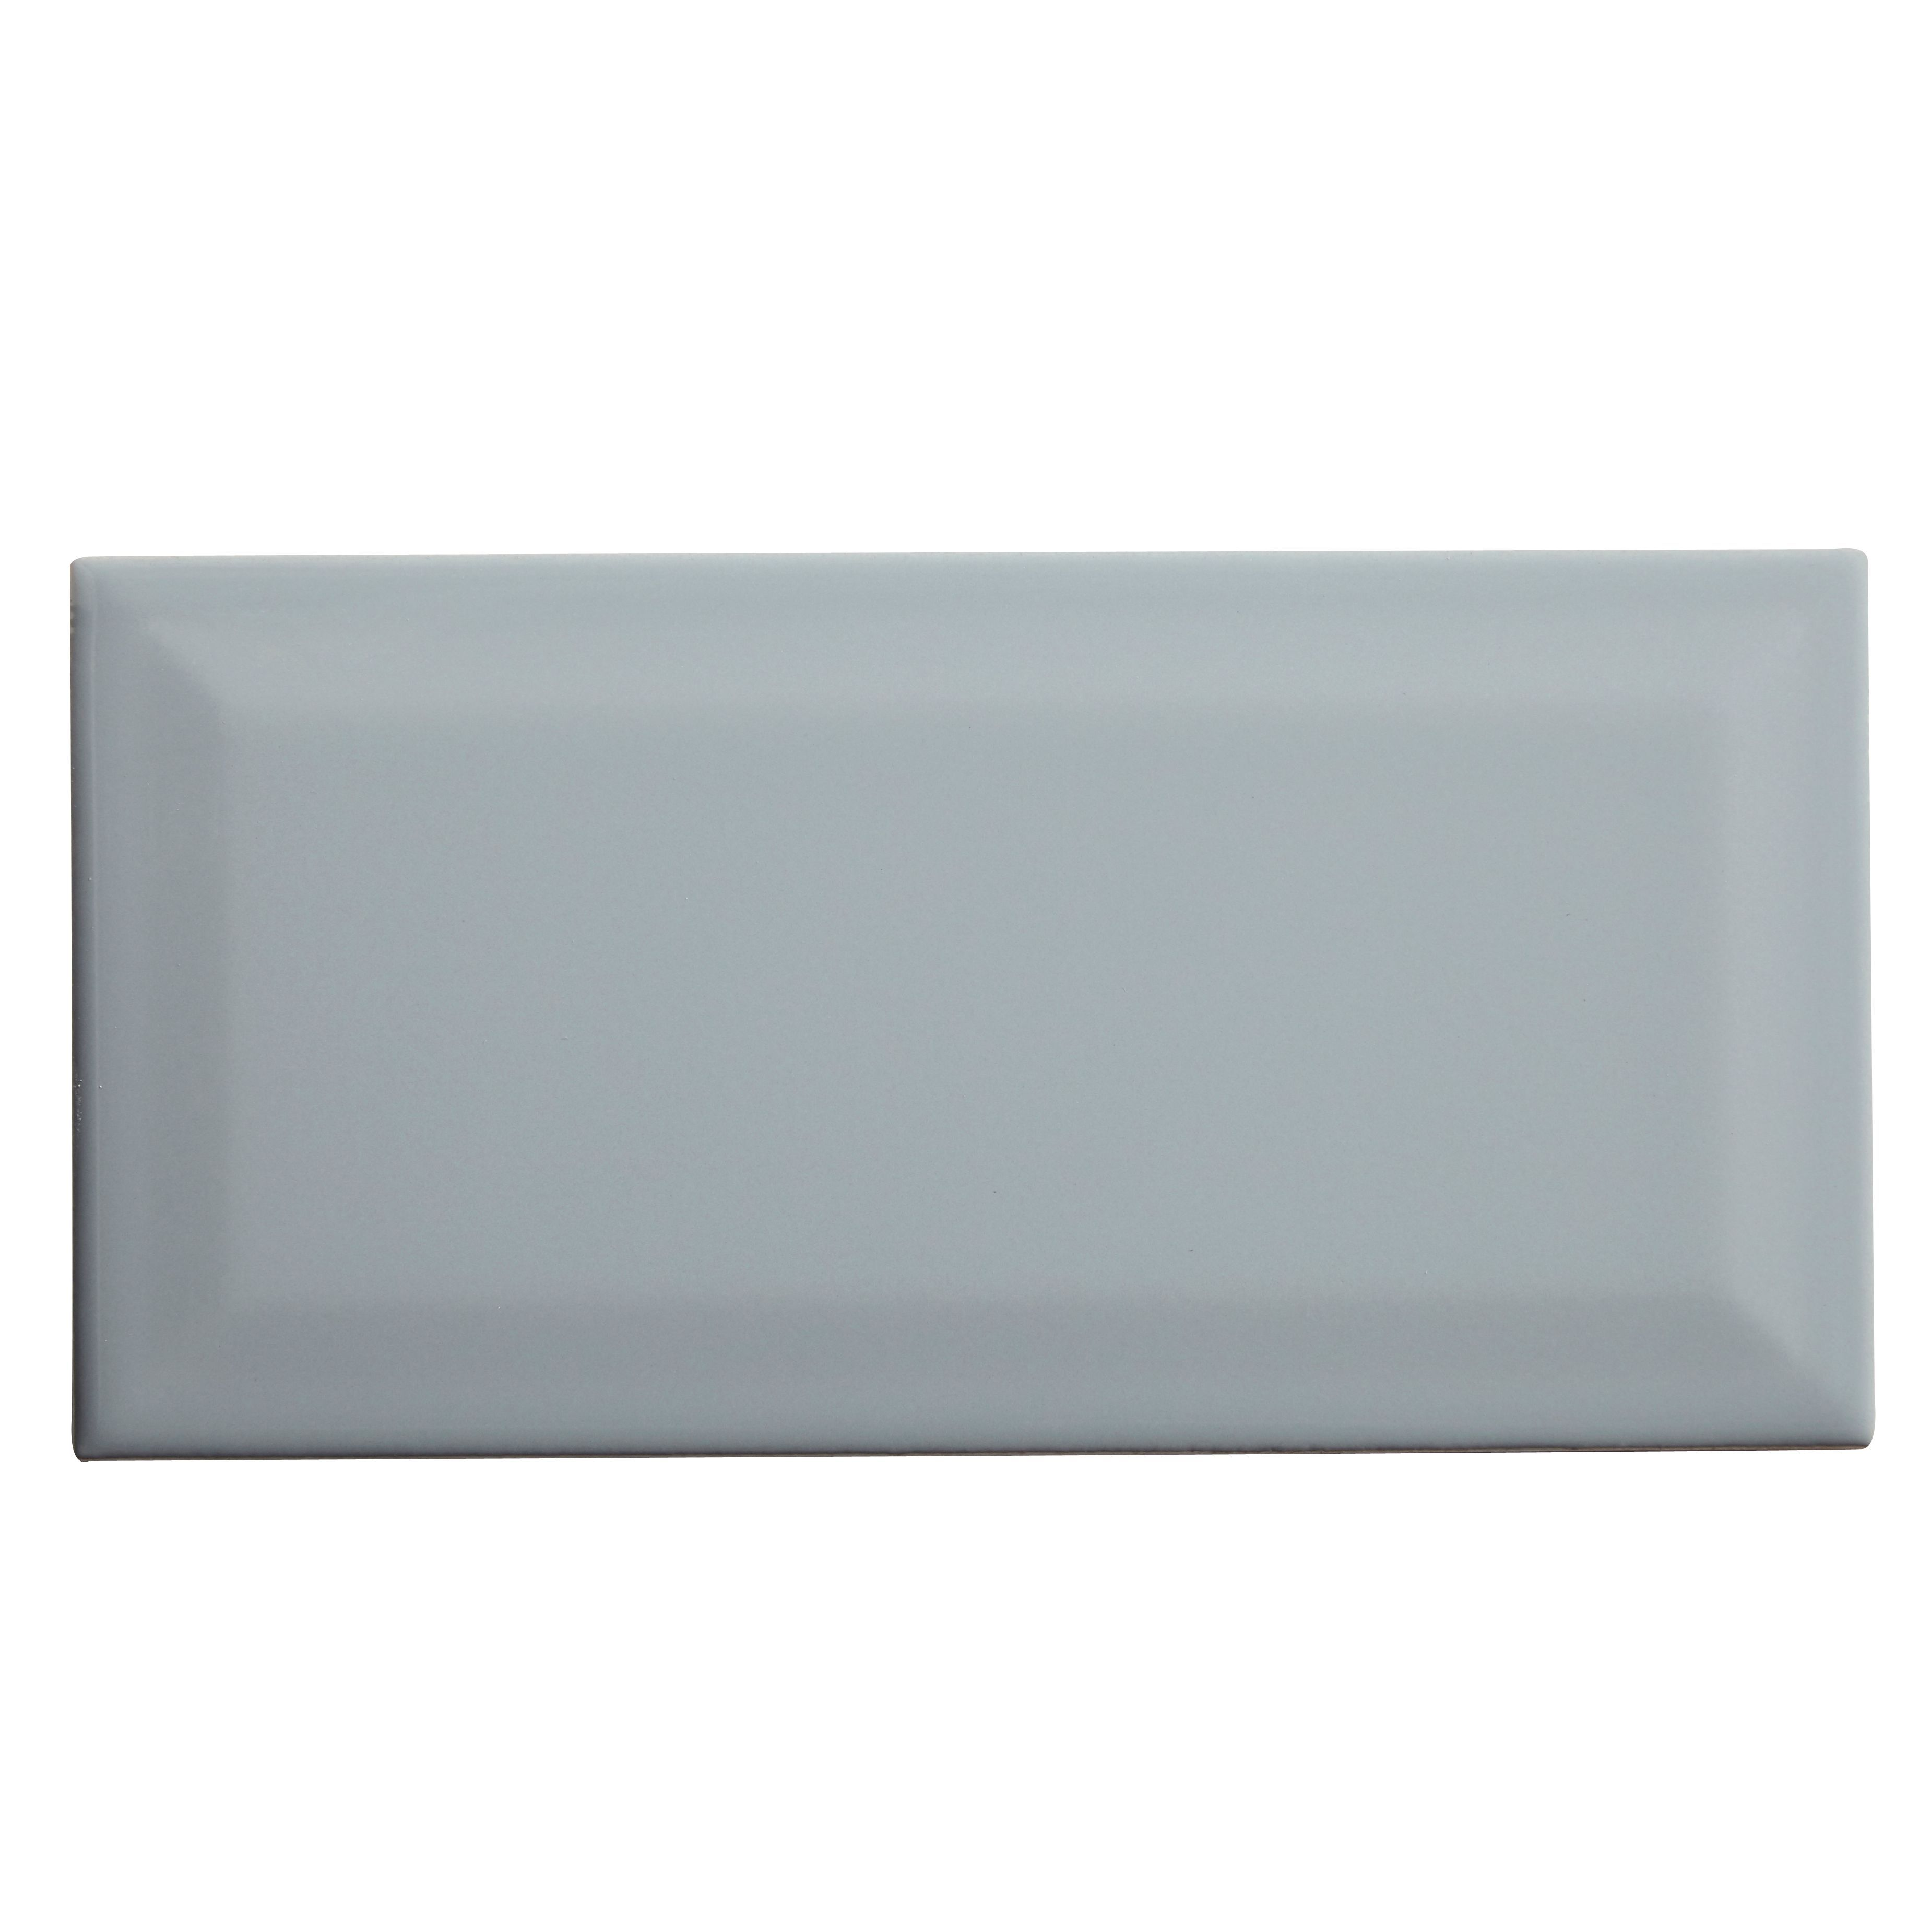 Trentie Grey Gloss Ceramic Wall tile, Pack of 40, (L)200mm (W)100mm